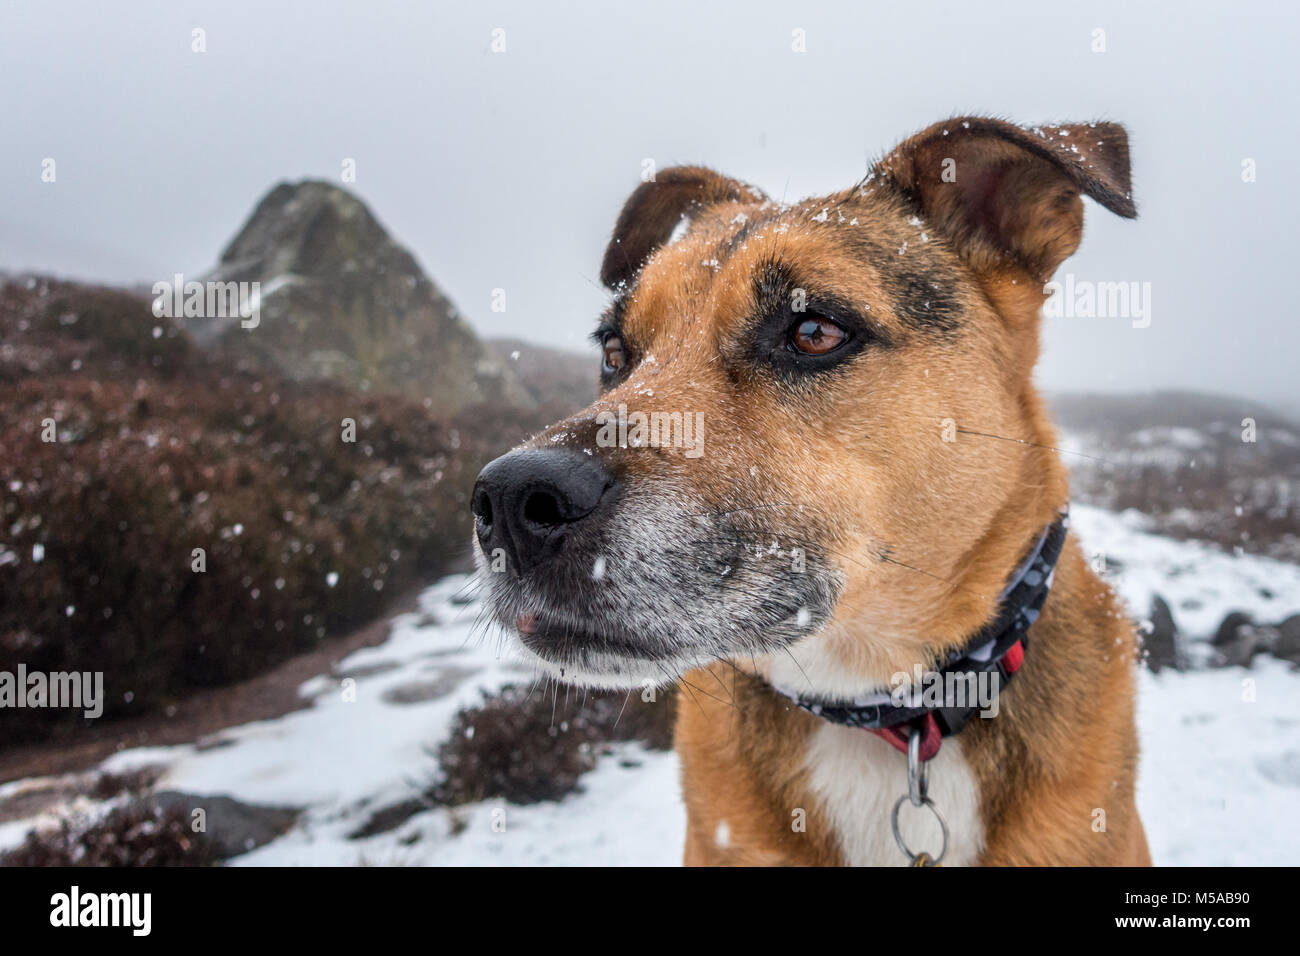 Portraits of a staffie cross dog with snowflakes on its face outside while its snowing - Stock Image